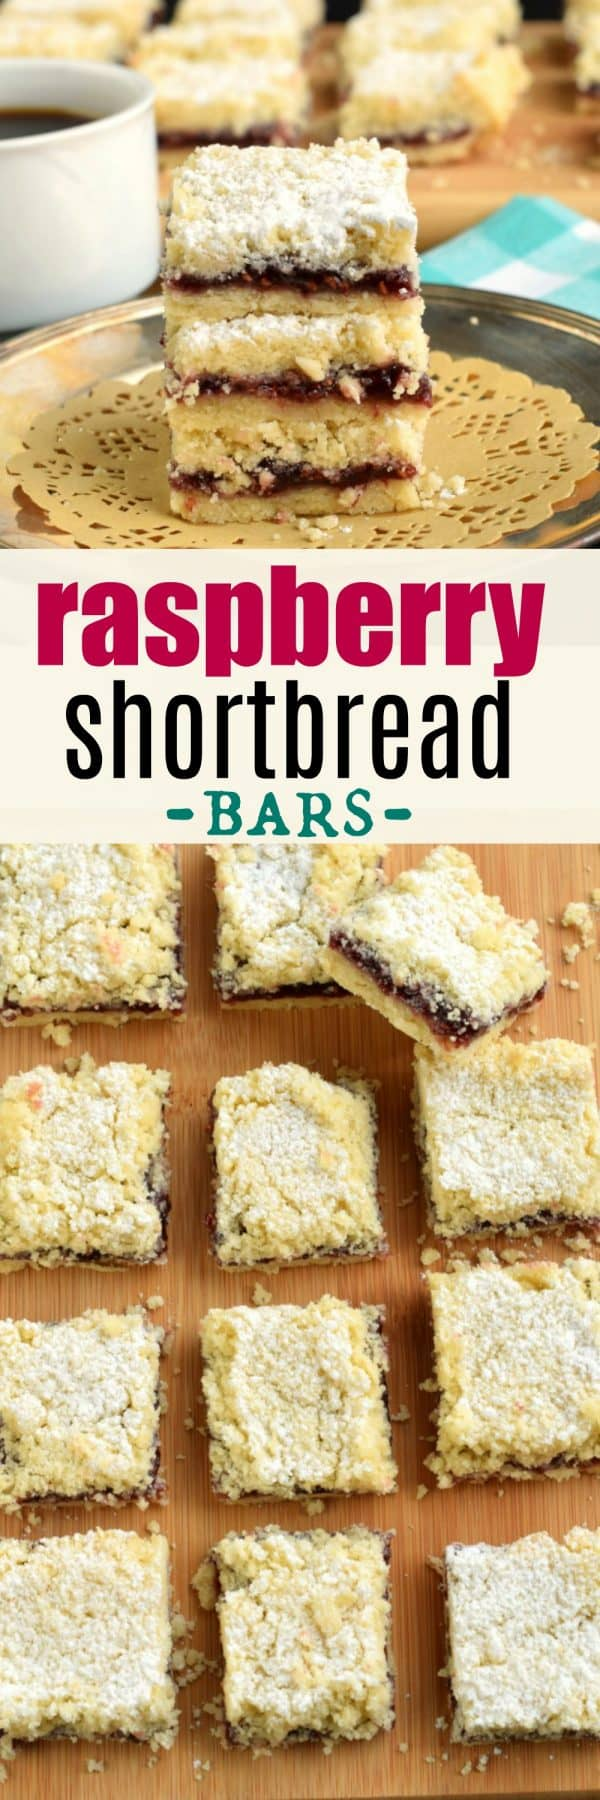 Melt in your mouth, Raspberry Shortbread Bars with a delicious crumble on top! #shortbread #cookies #cookierecipe #raspberrybar